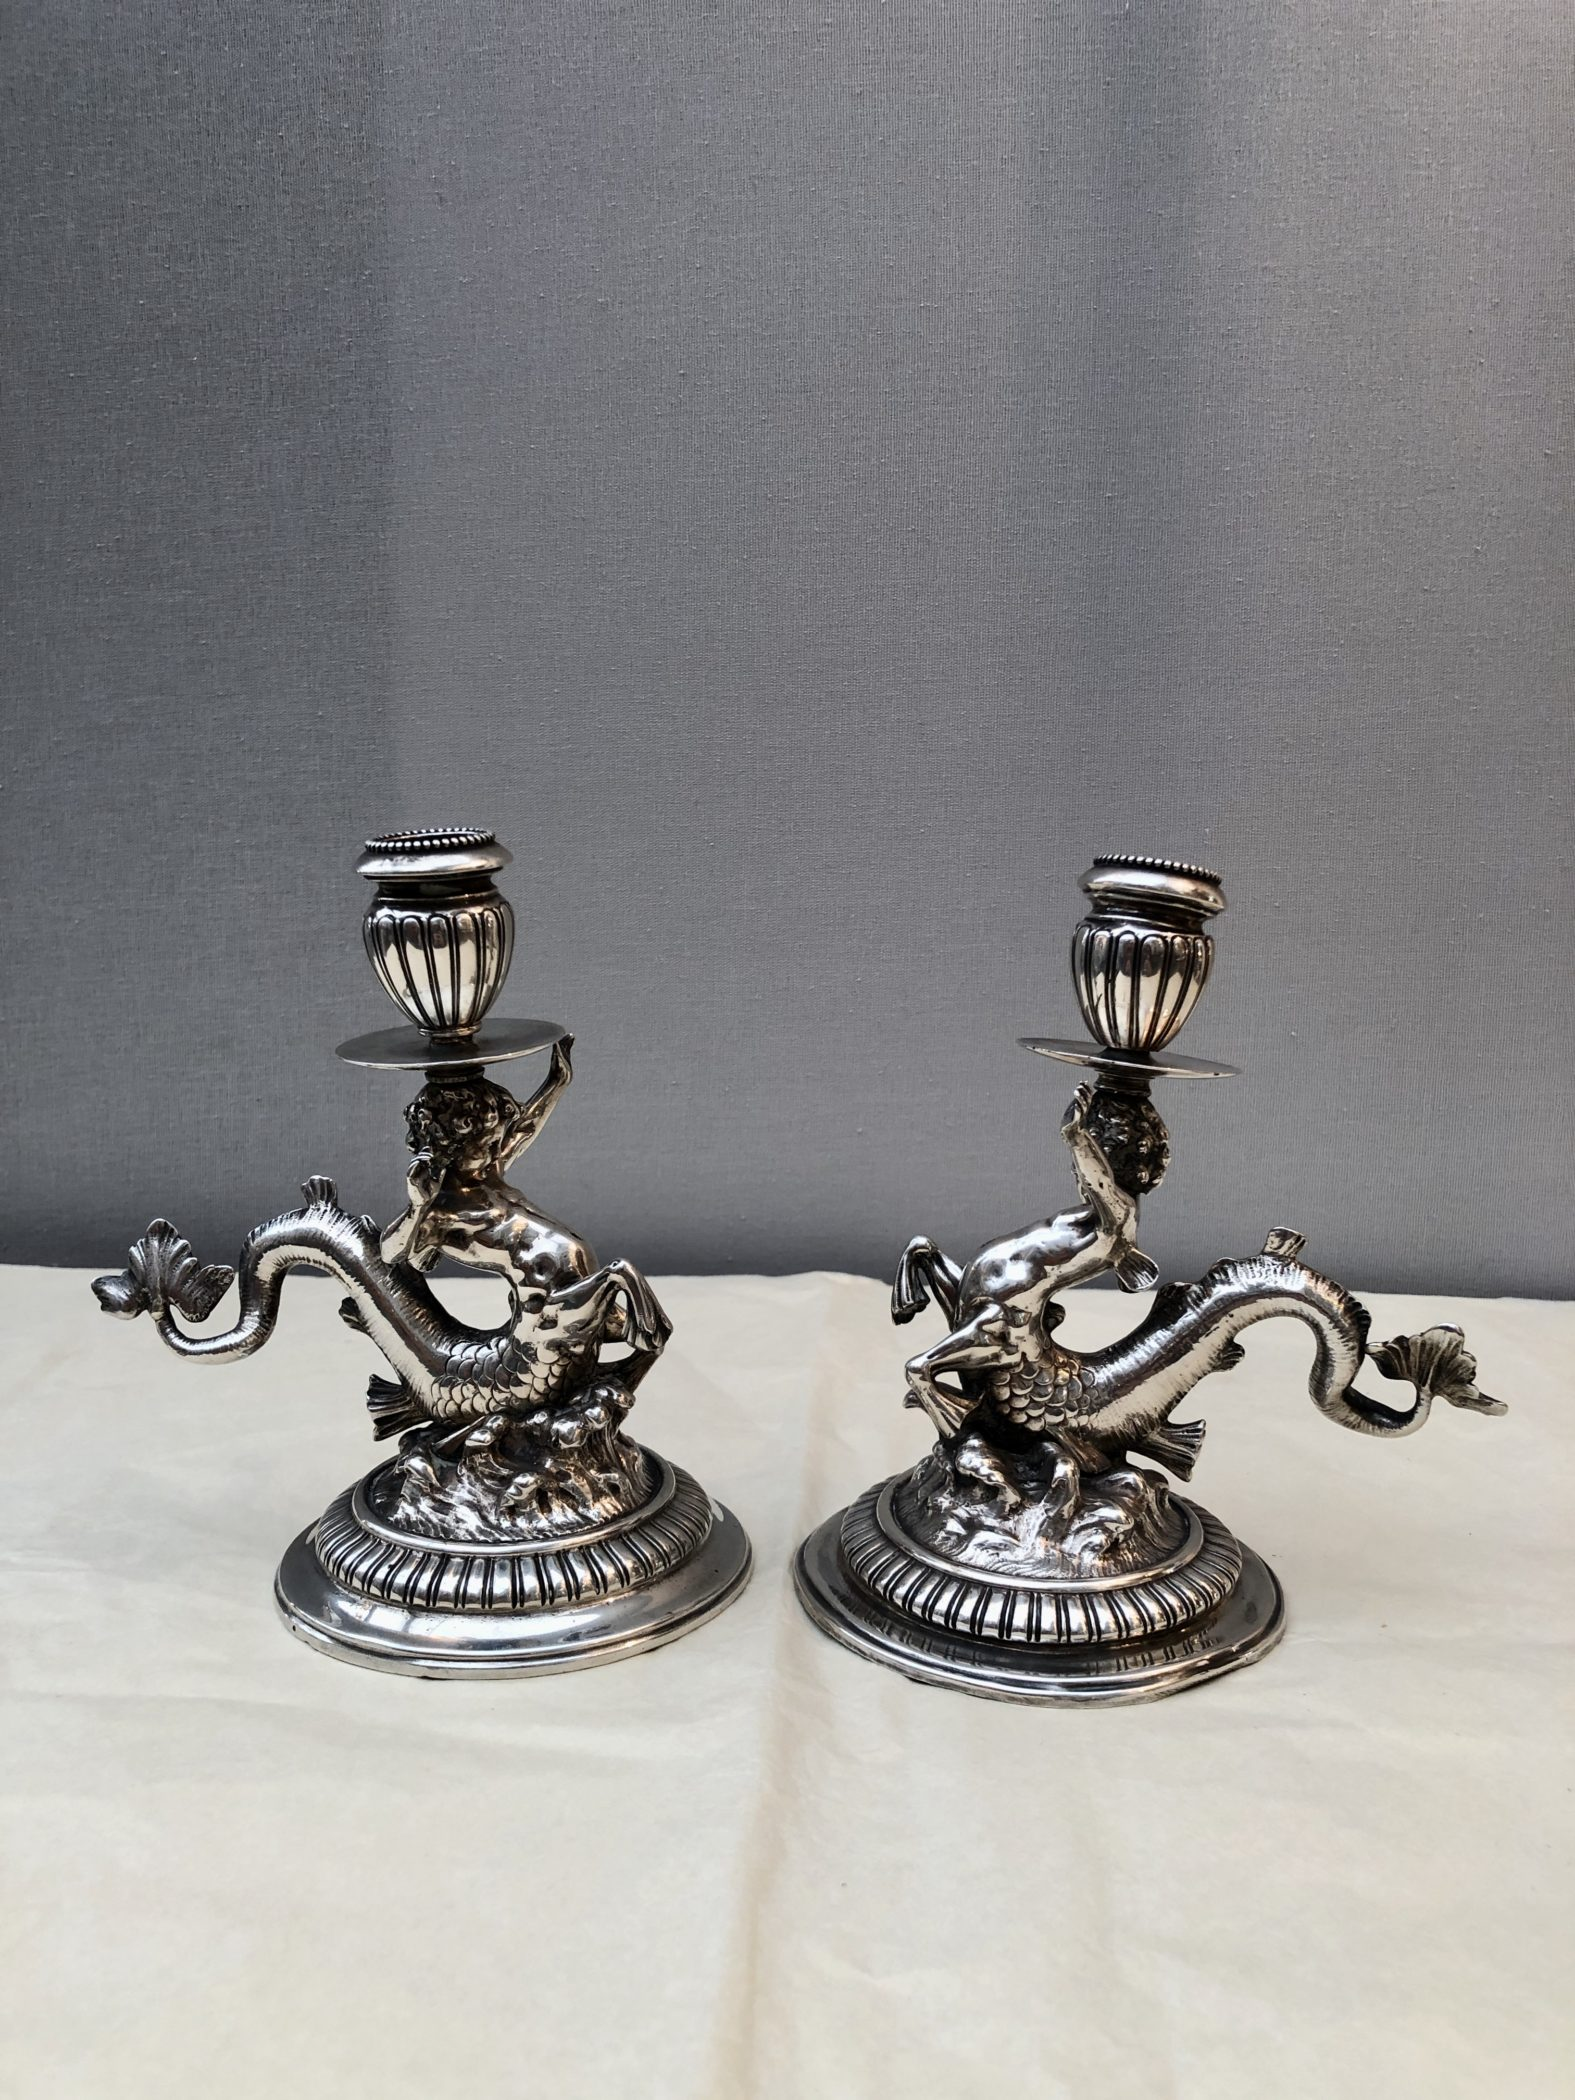 Pair of solid silver candlesticks, 19th century